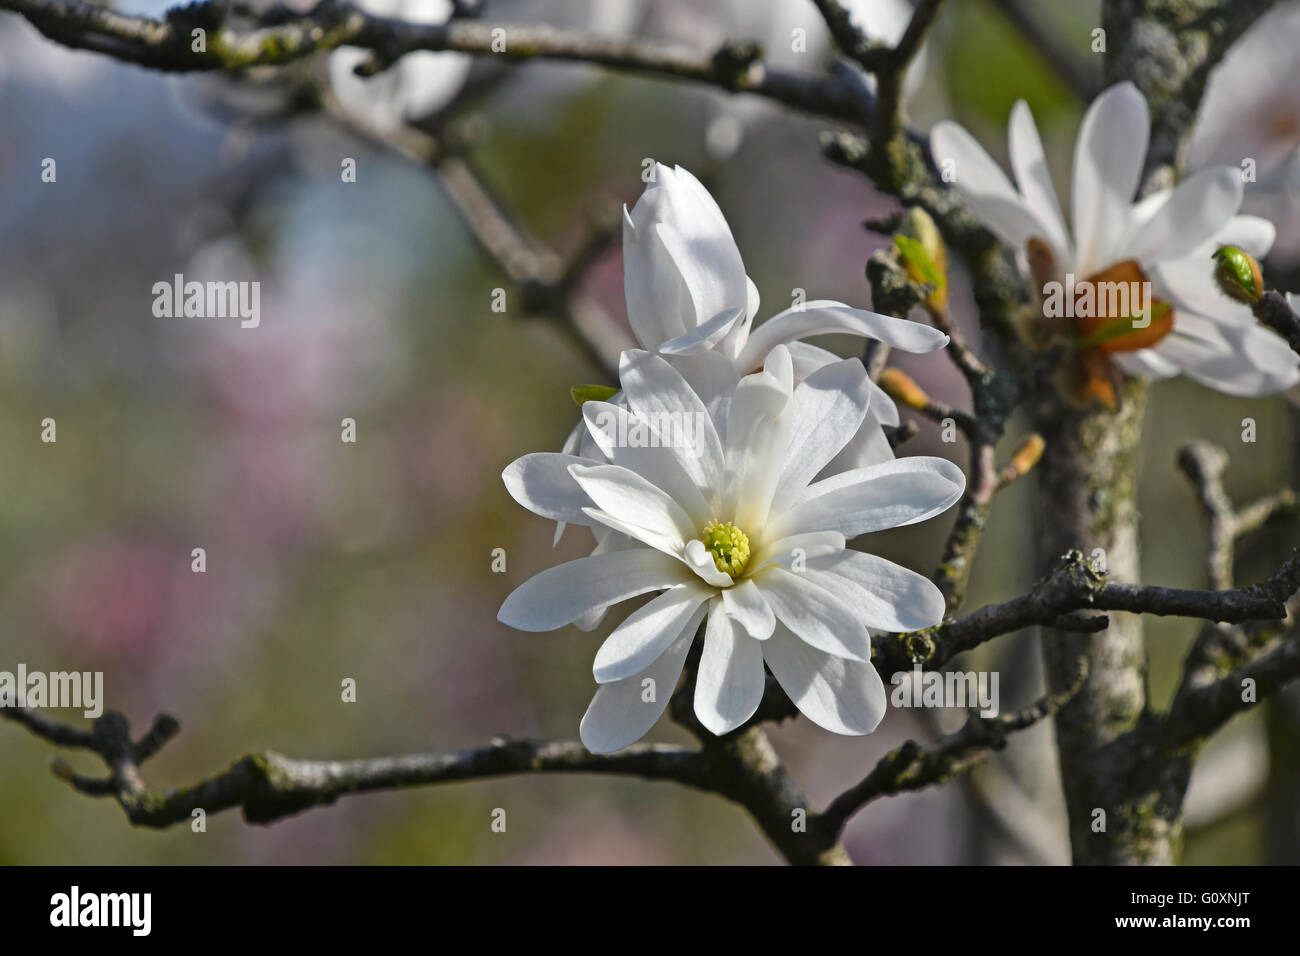 Branch With One White Magnolia Flower With Twigs And Fresh New Buds